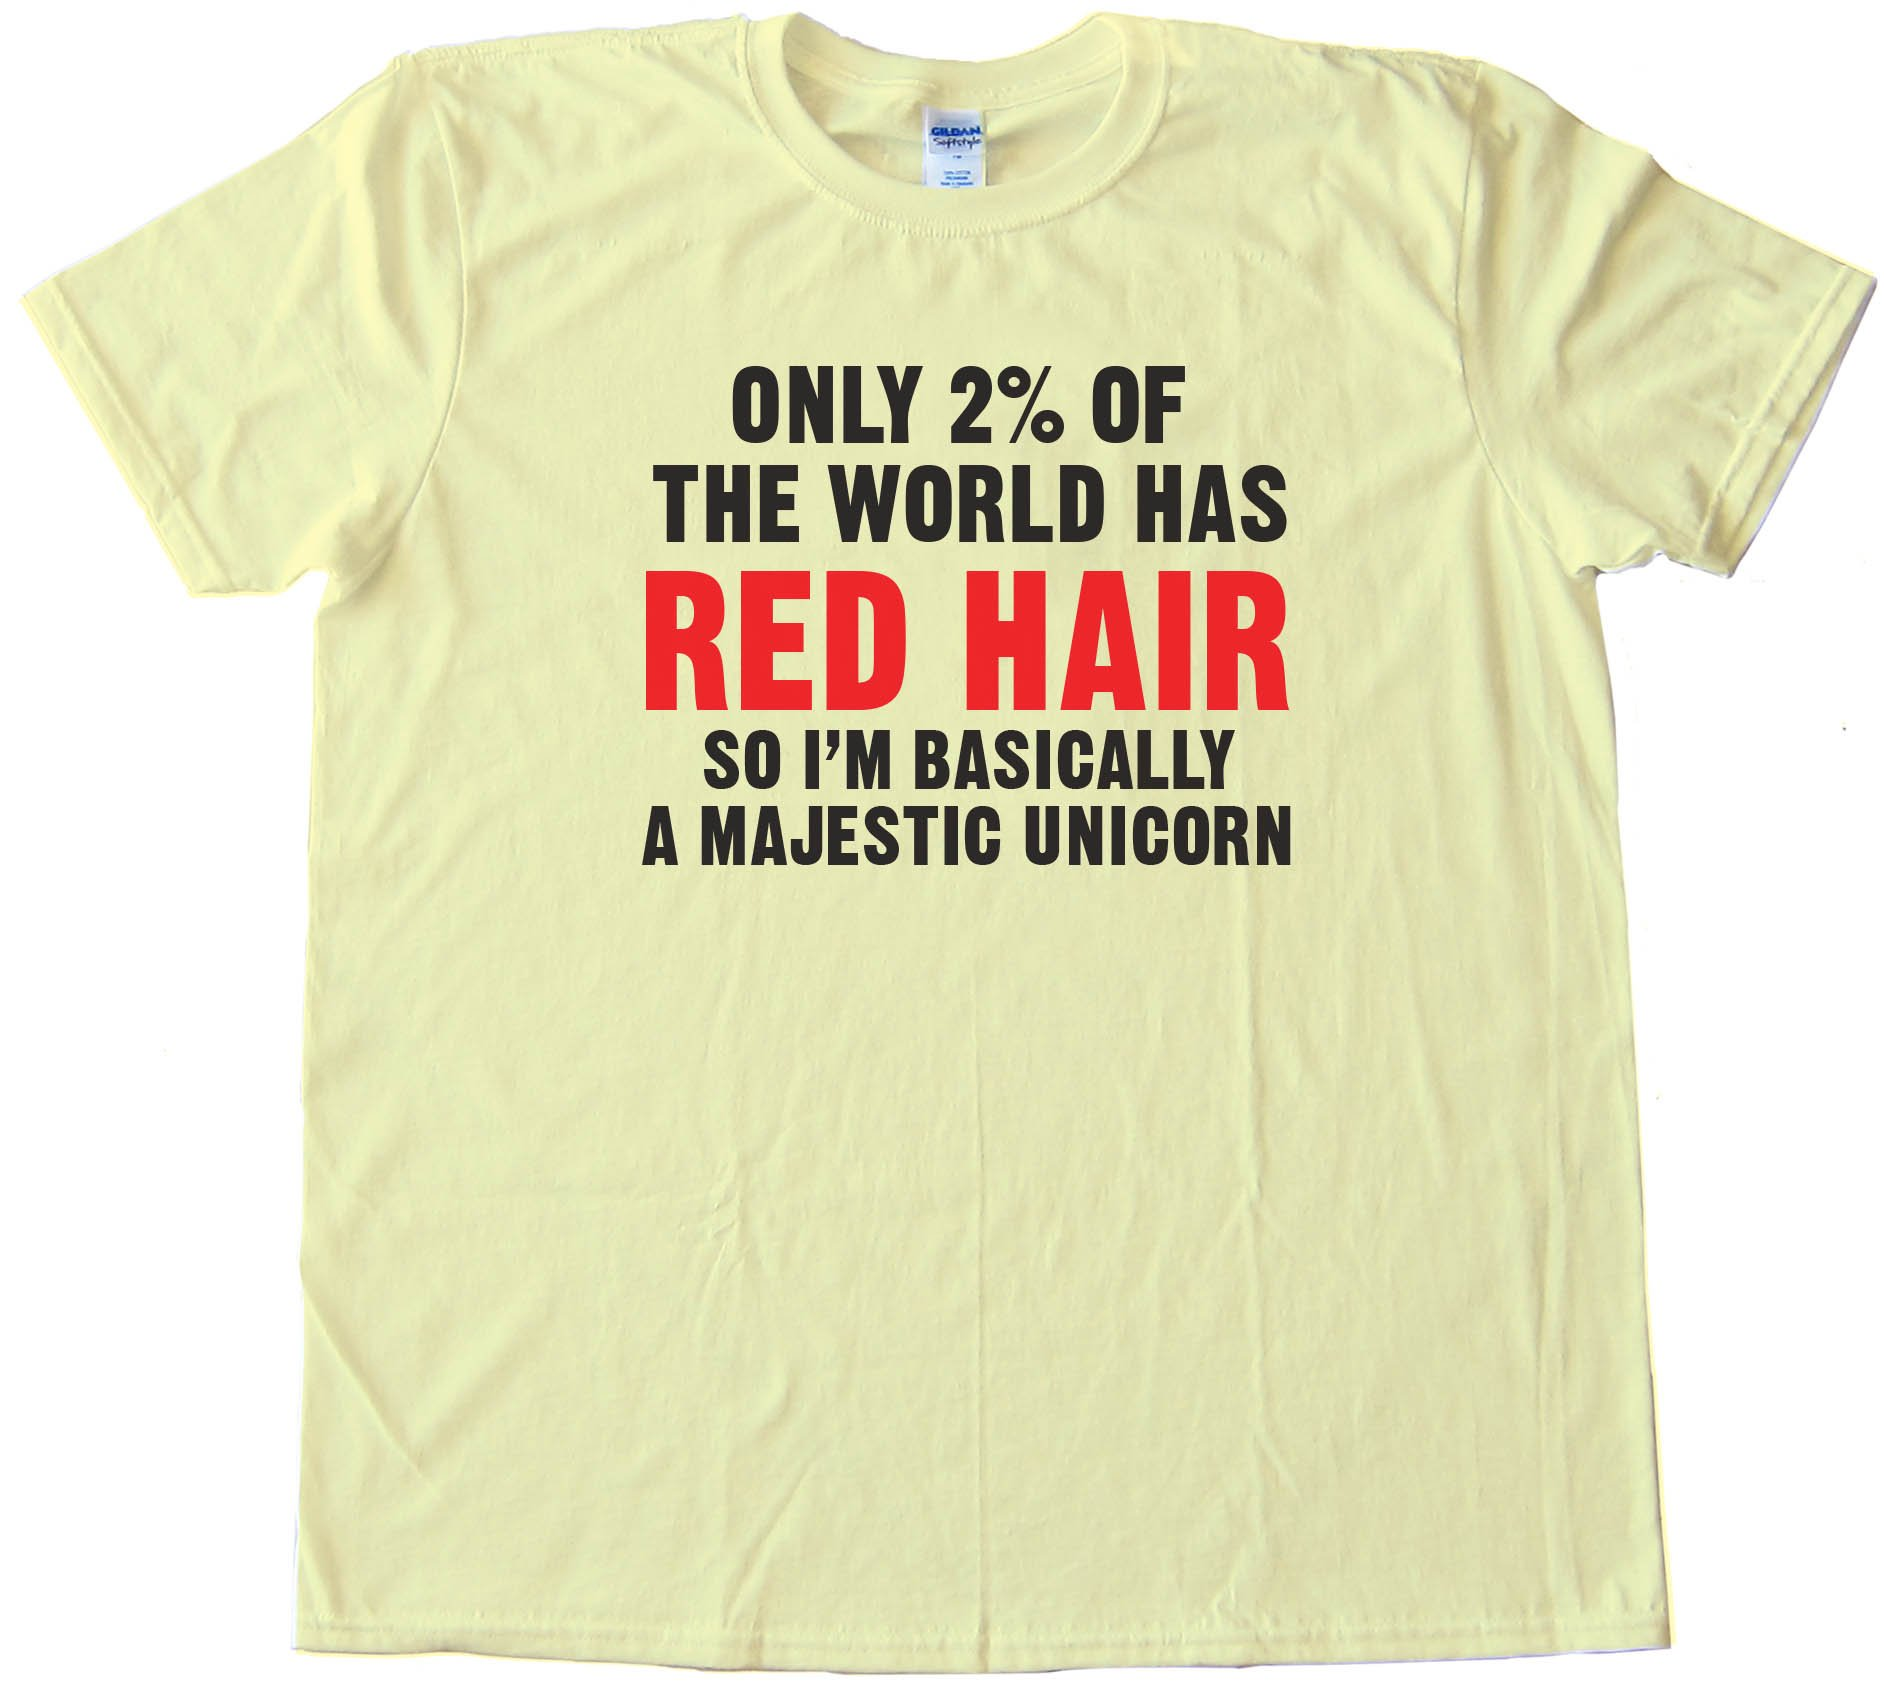 Only 2% Of The World Has Red Hair So I'M Basically A Majestic Unicorn Tee Shirt